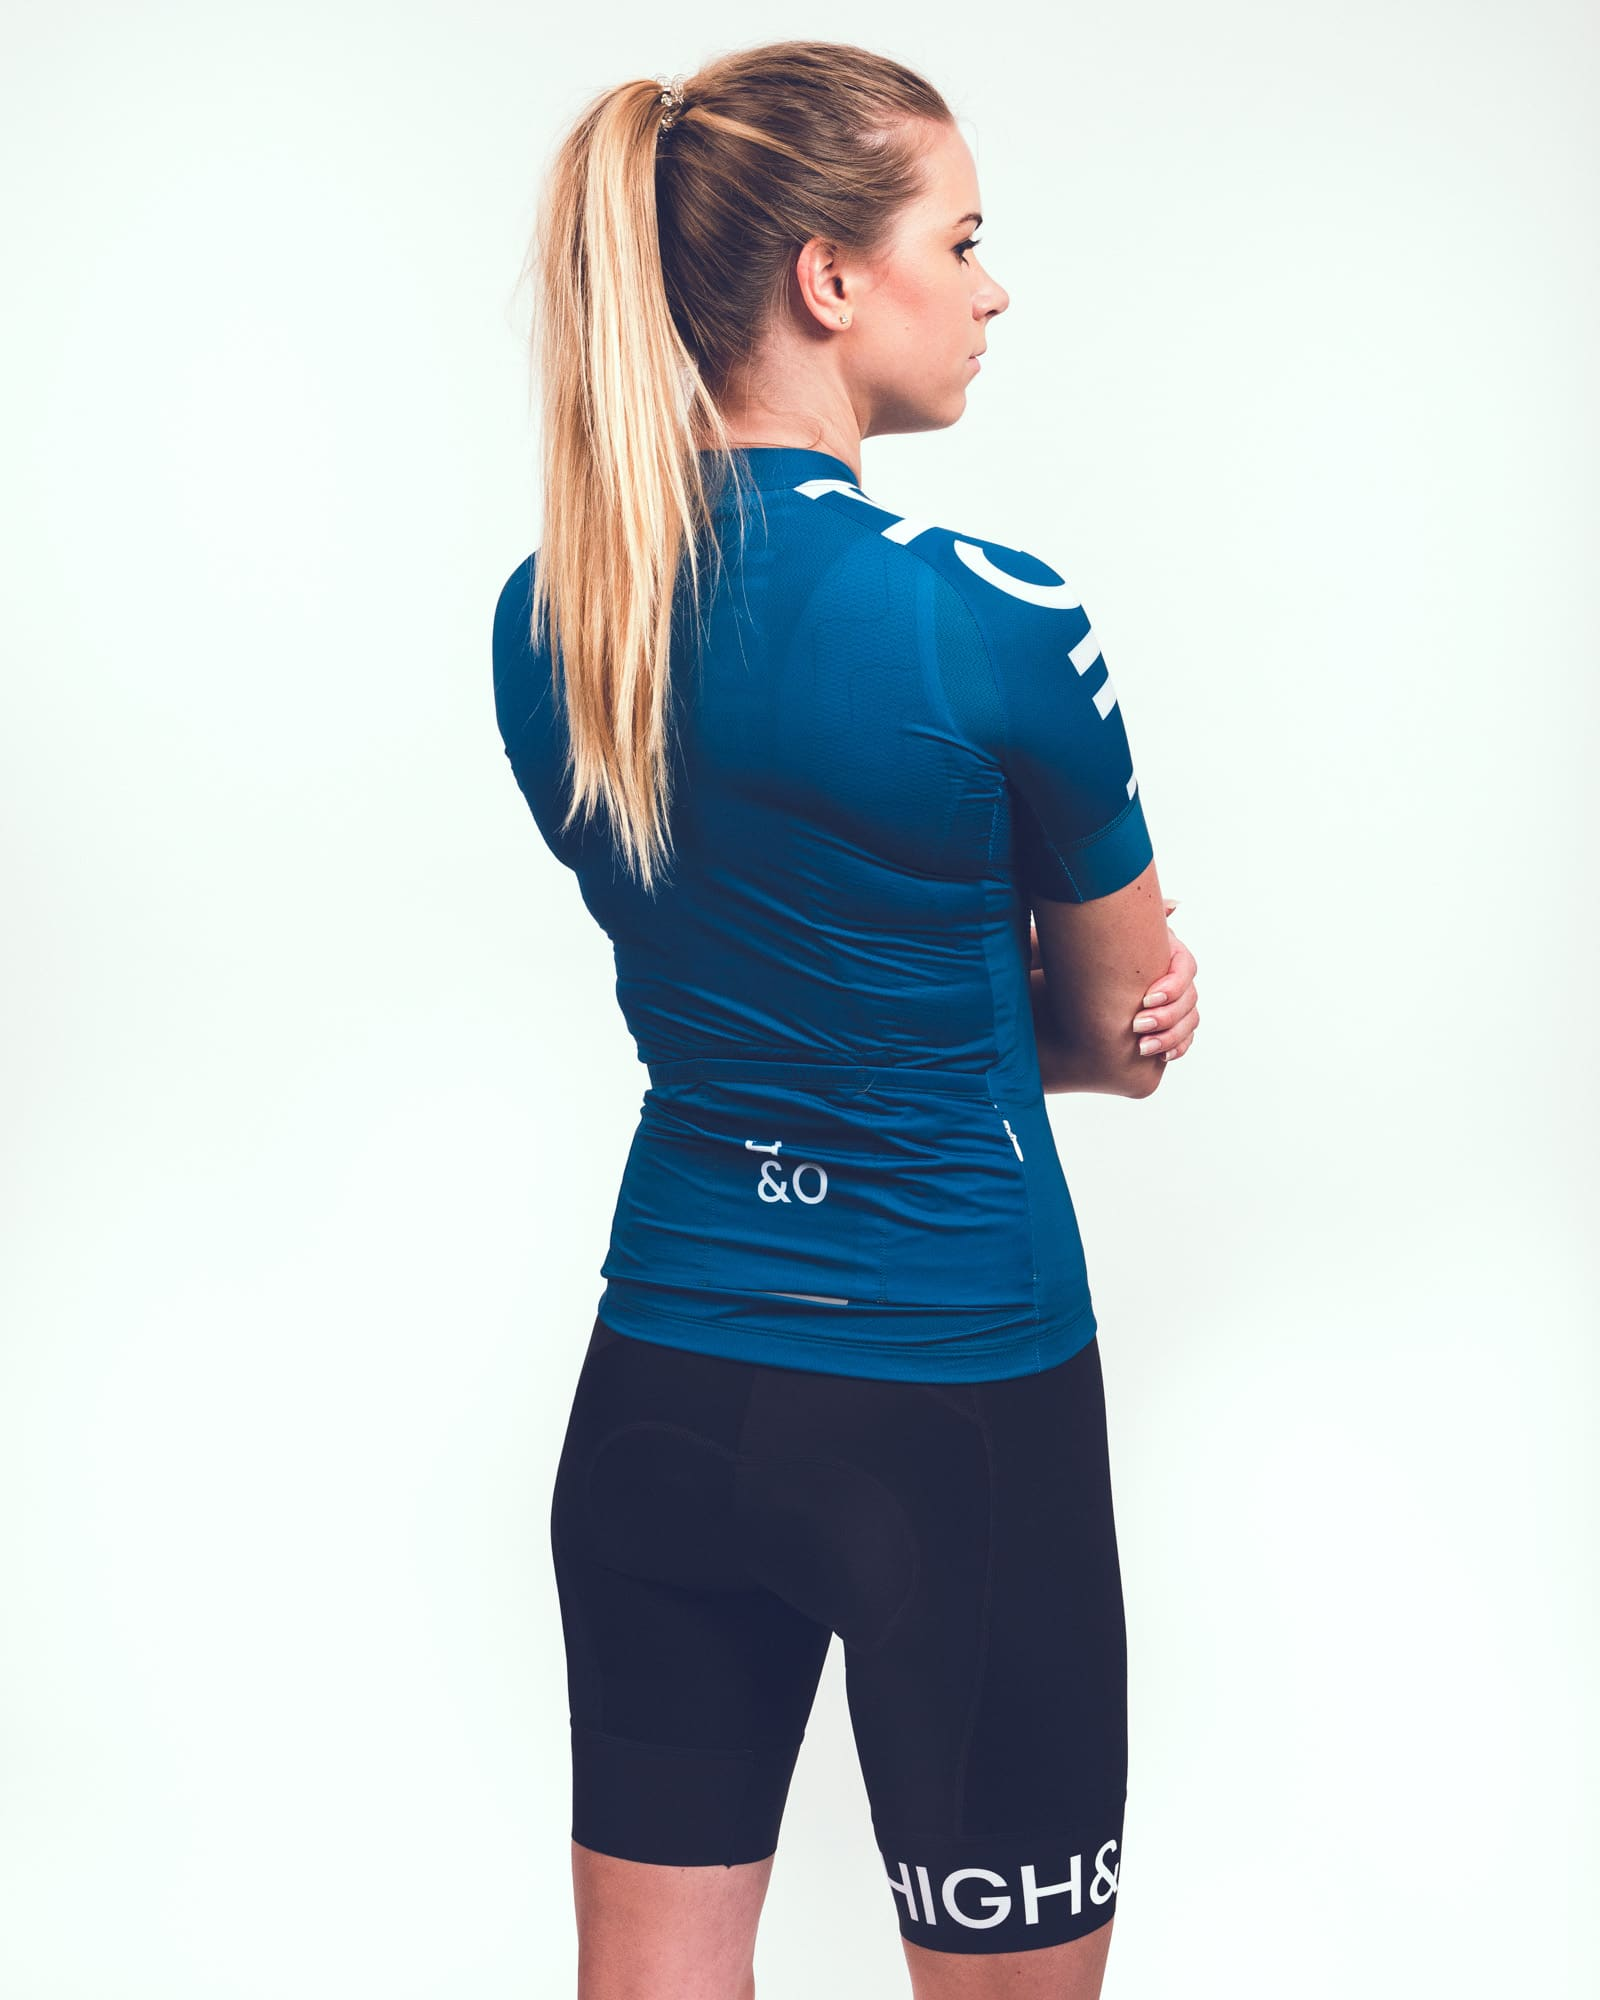 HIGH and OVER baltic blue cycling jersey